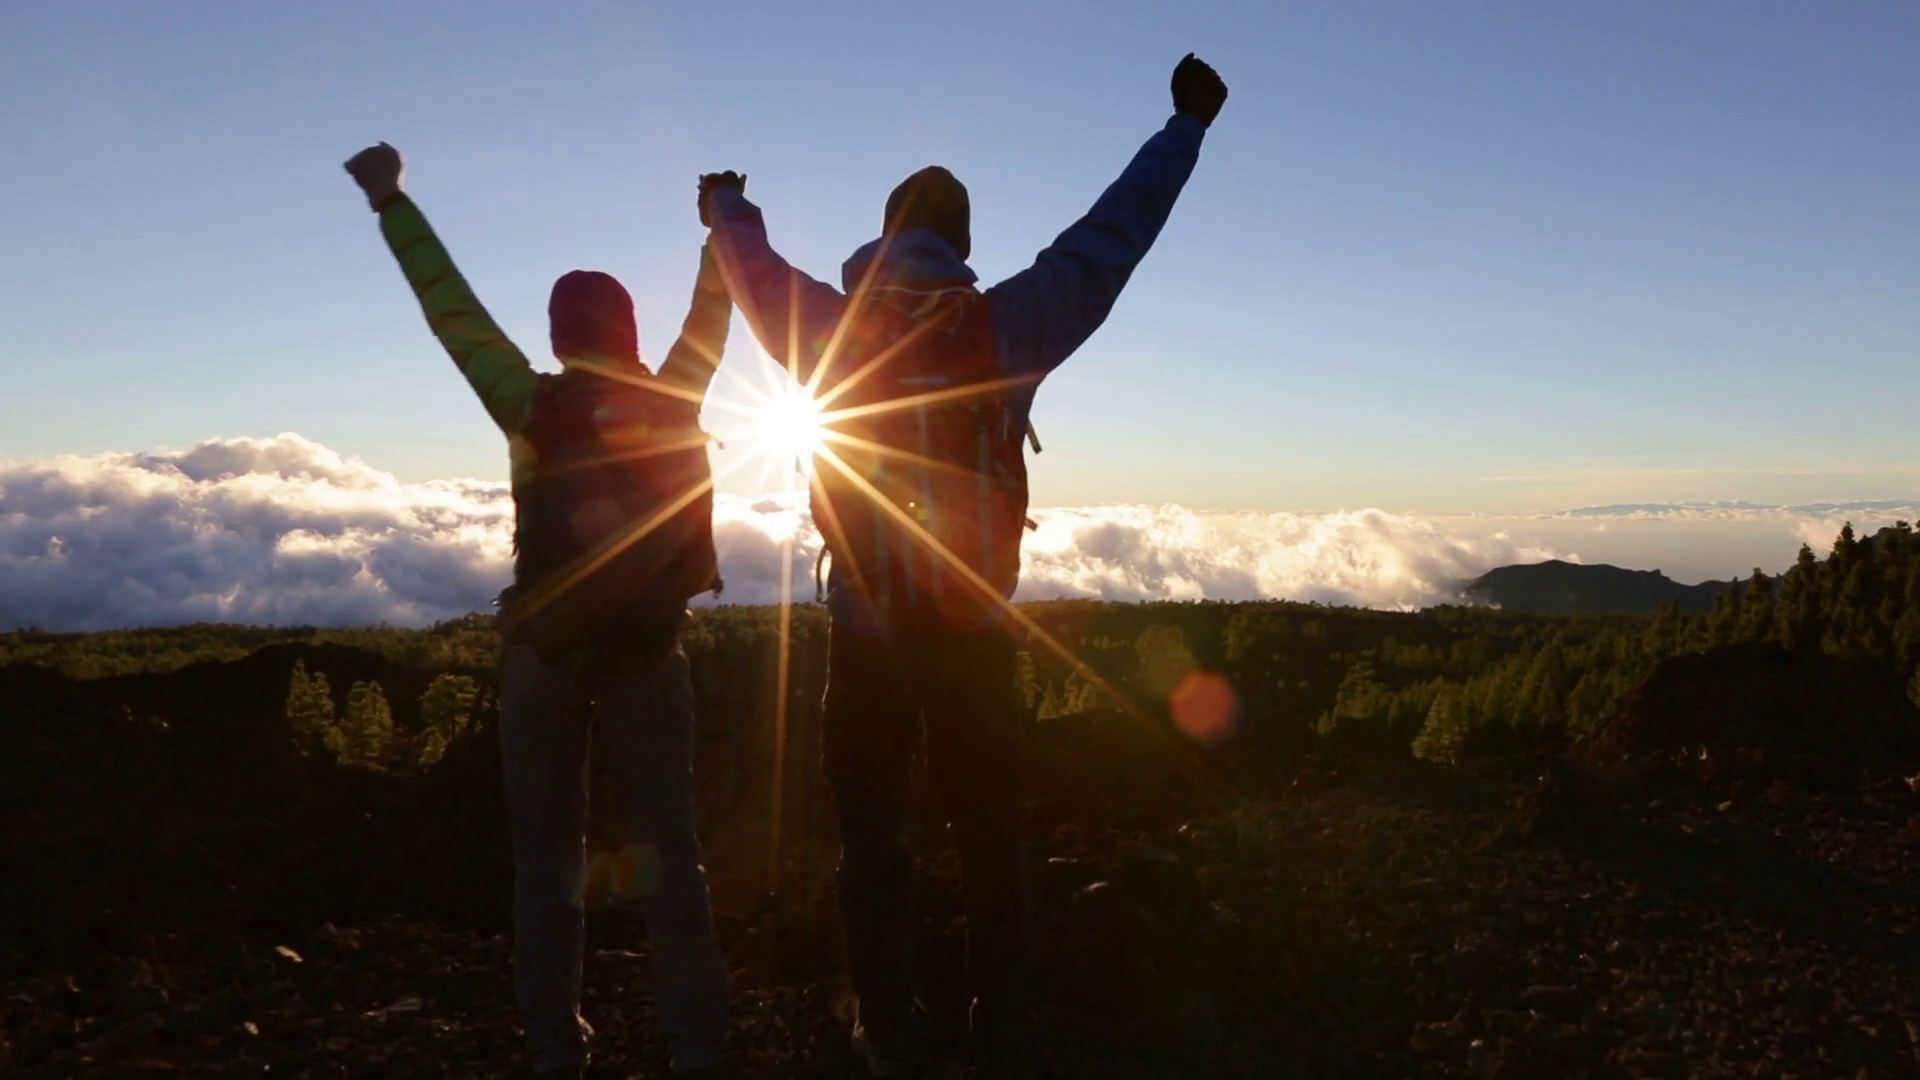 videoblocks-success-achievement-and-accomplishment-concept-with-hiking-people-cheering-jumping-running-and-celebrating-of-joy-on-trekking-hike-outside-hikers-having-fun-at-sunset_sfjisfo1_thumbnail-full06.png